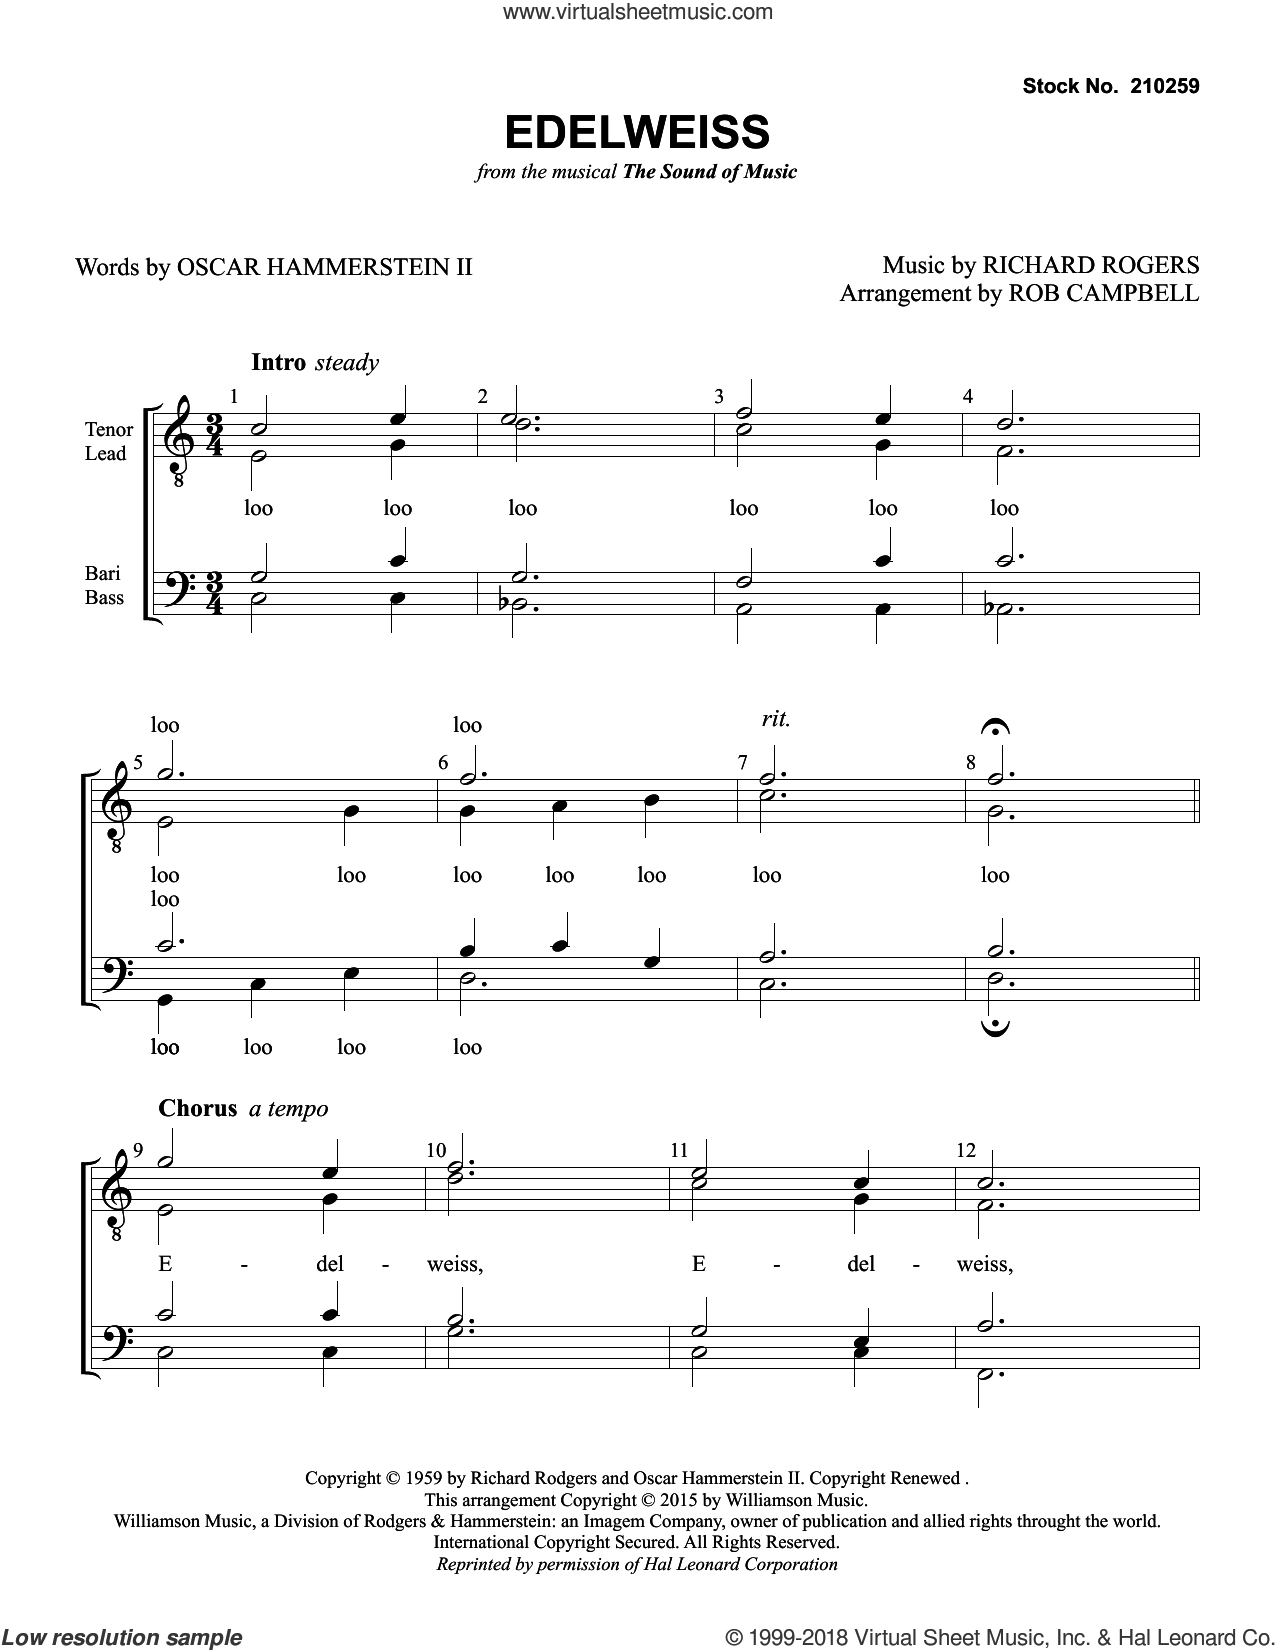 Edelweiss (from The Sound of Music) (arr. Rob Campbell) sheet music for choir (TTBB: tenor, bass) by Christopher Plummer, Rob Campbell, Oscar II Hammerstein and Richard Rodgers, intermediate skill level